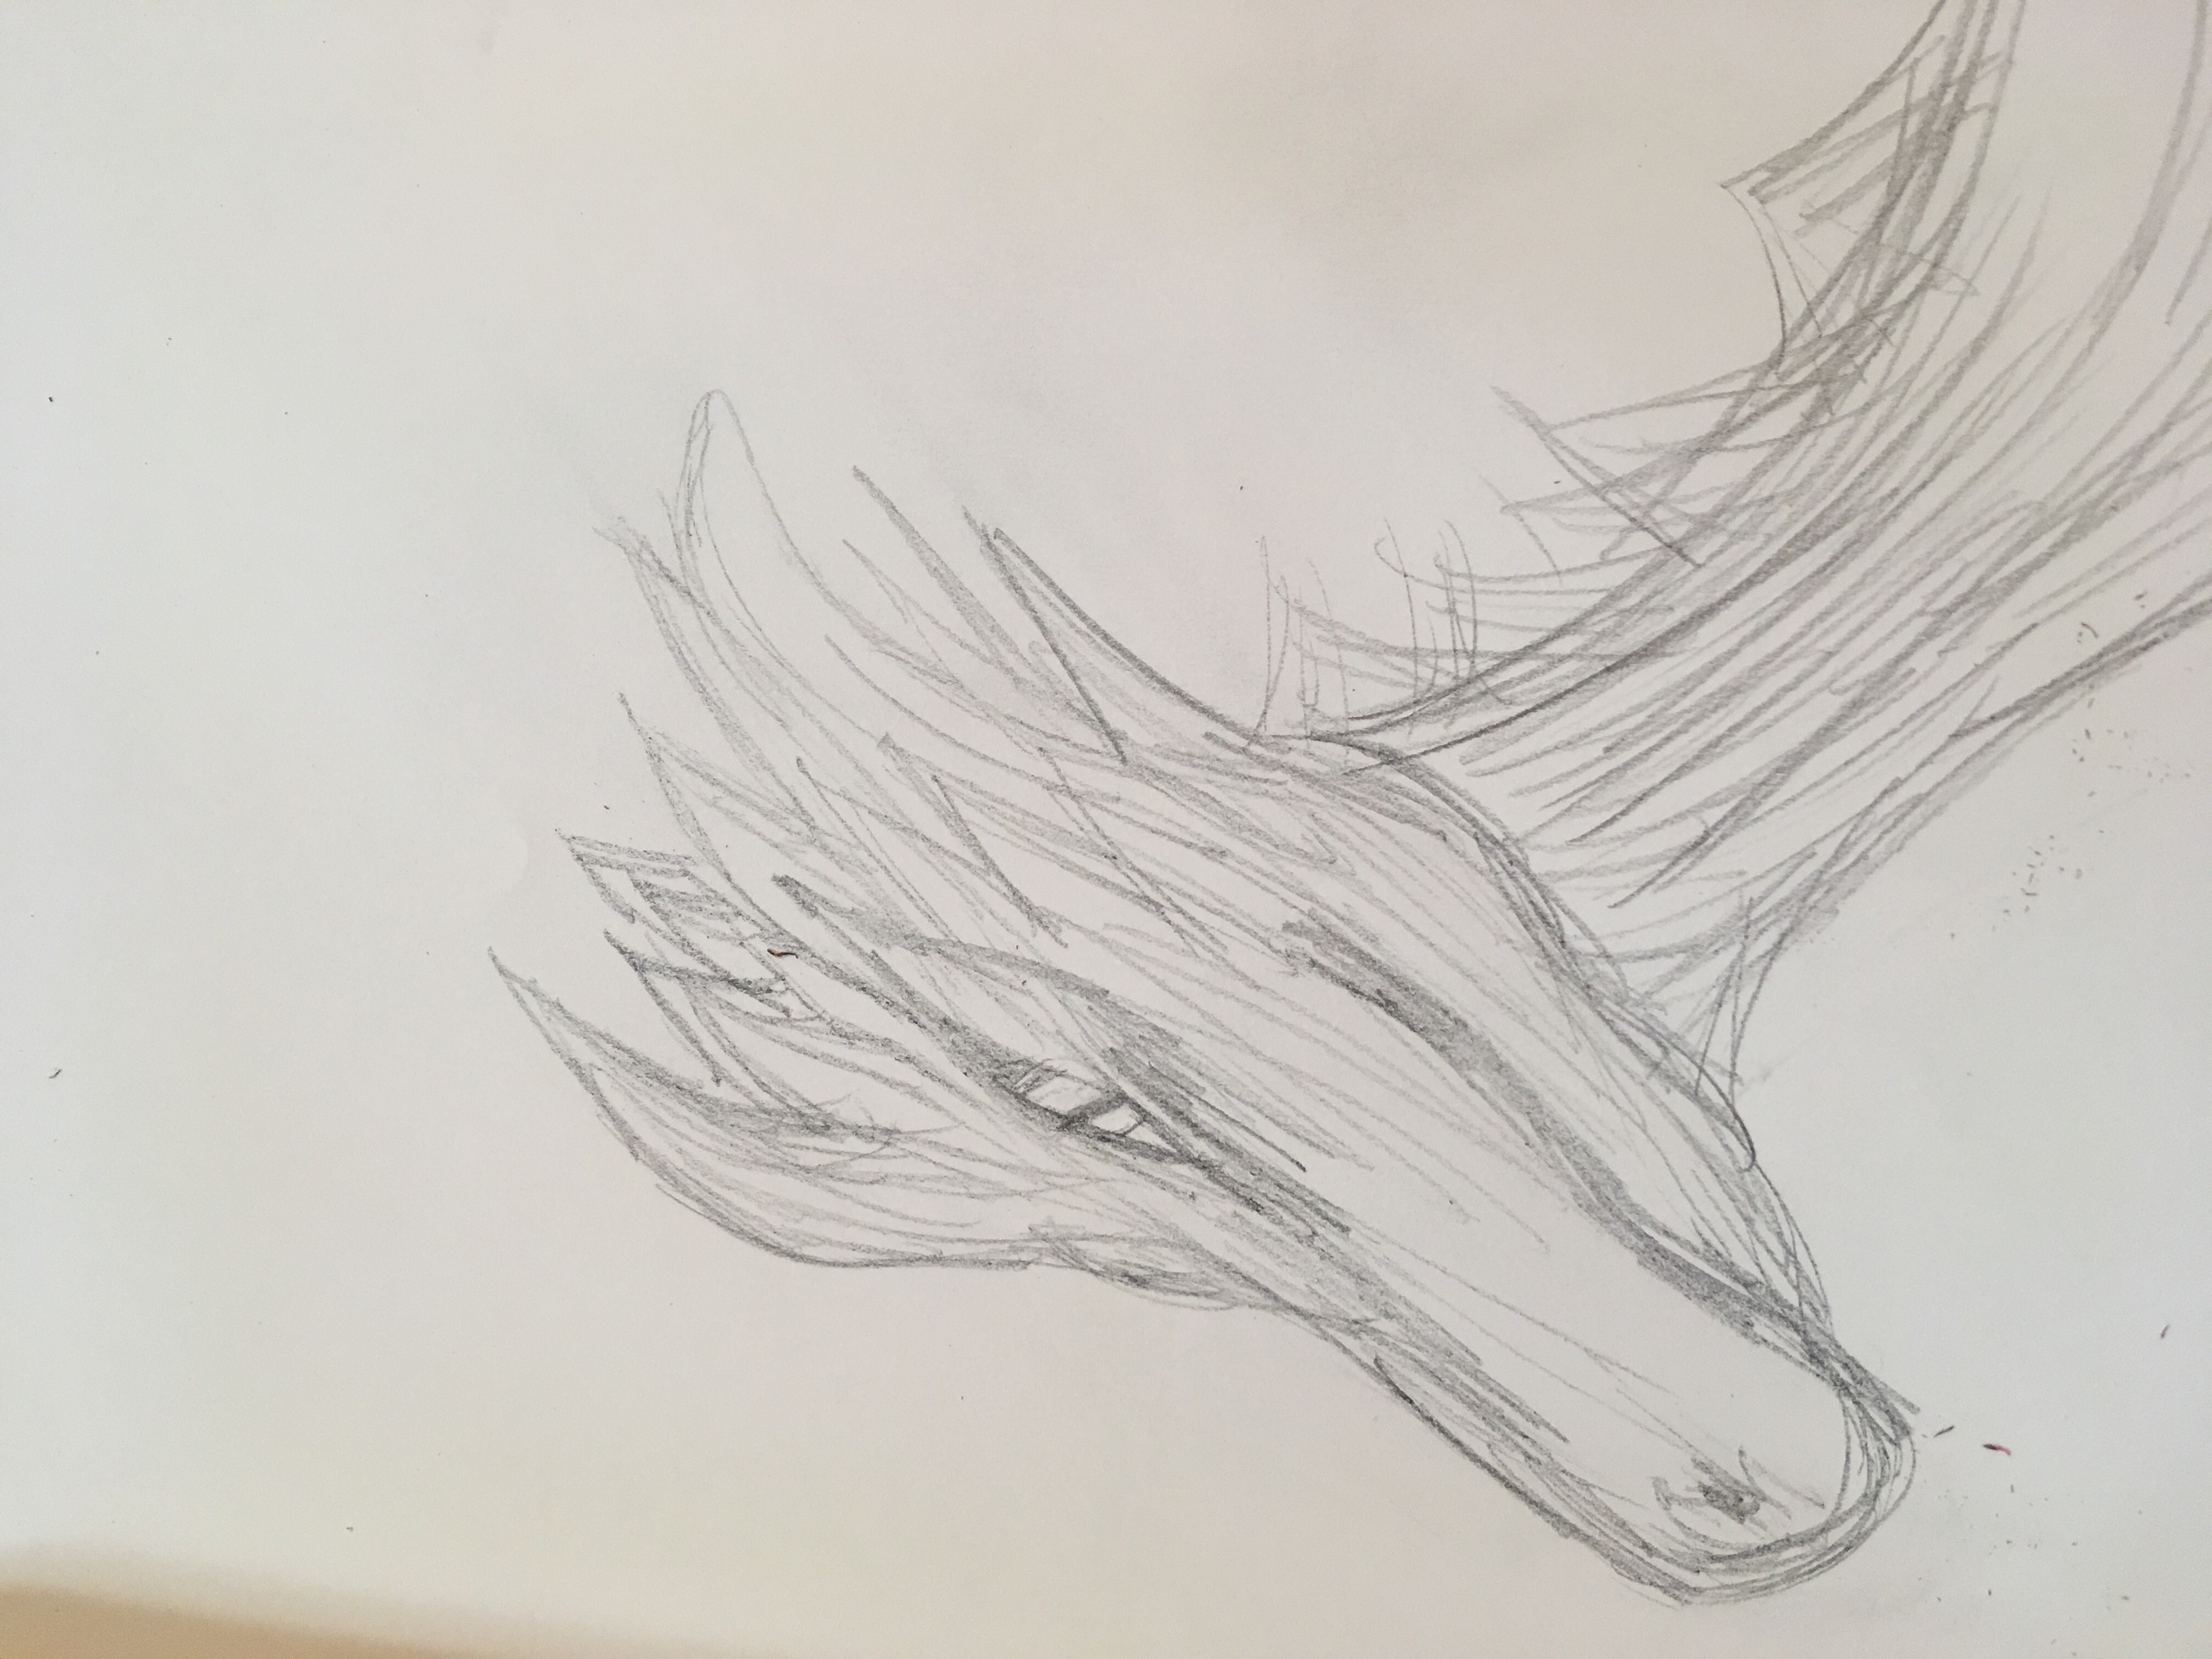 Portland Festival of Books: Drawing Dragons Day 307